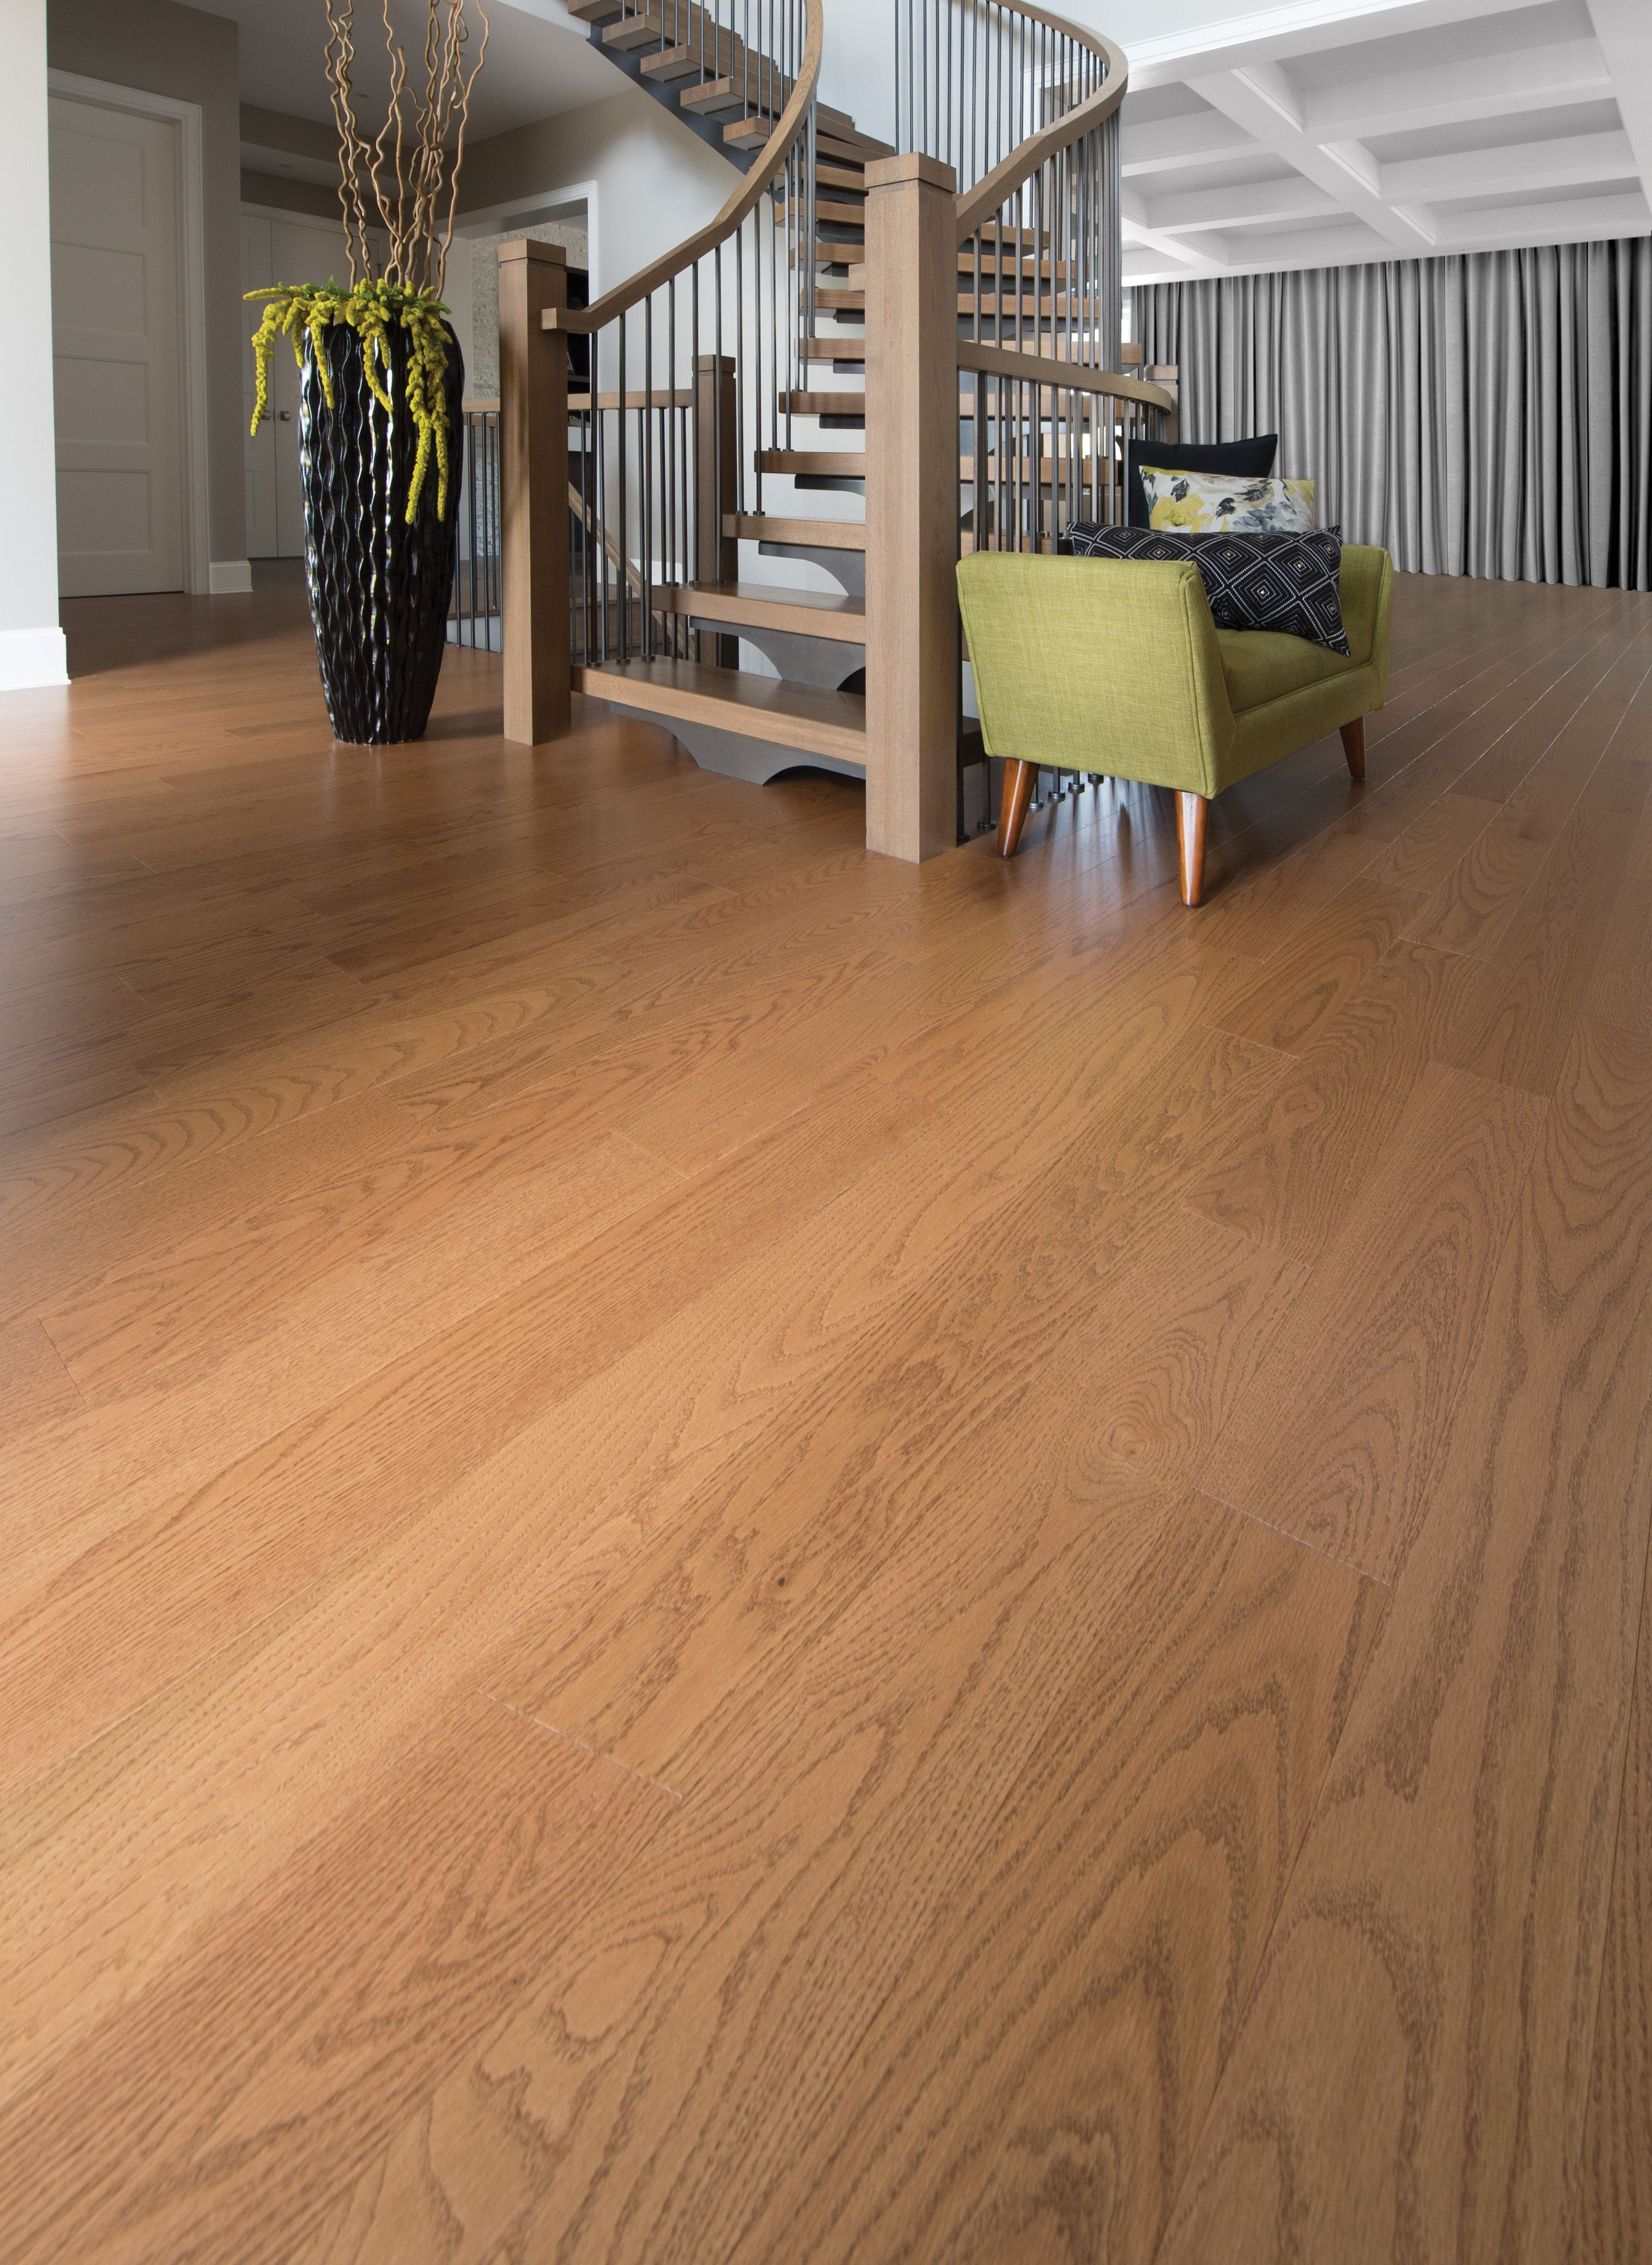 Red Oak Sierra   Inspiration Collection By Mirage Floors | Mirage Hardwood  Floors | Pinterest | Red Oak, Living Rooms And House Remodeling